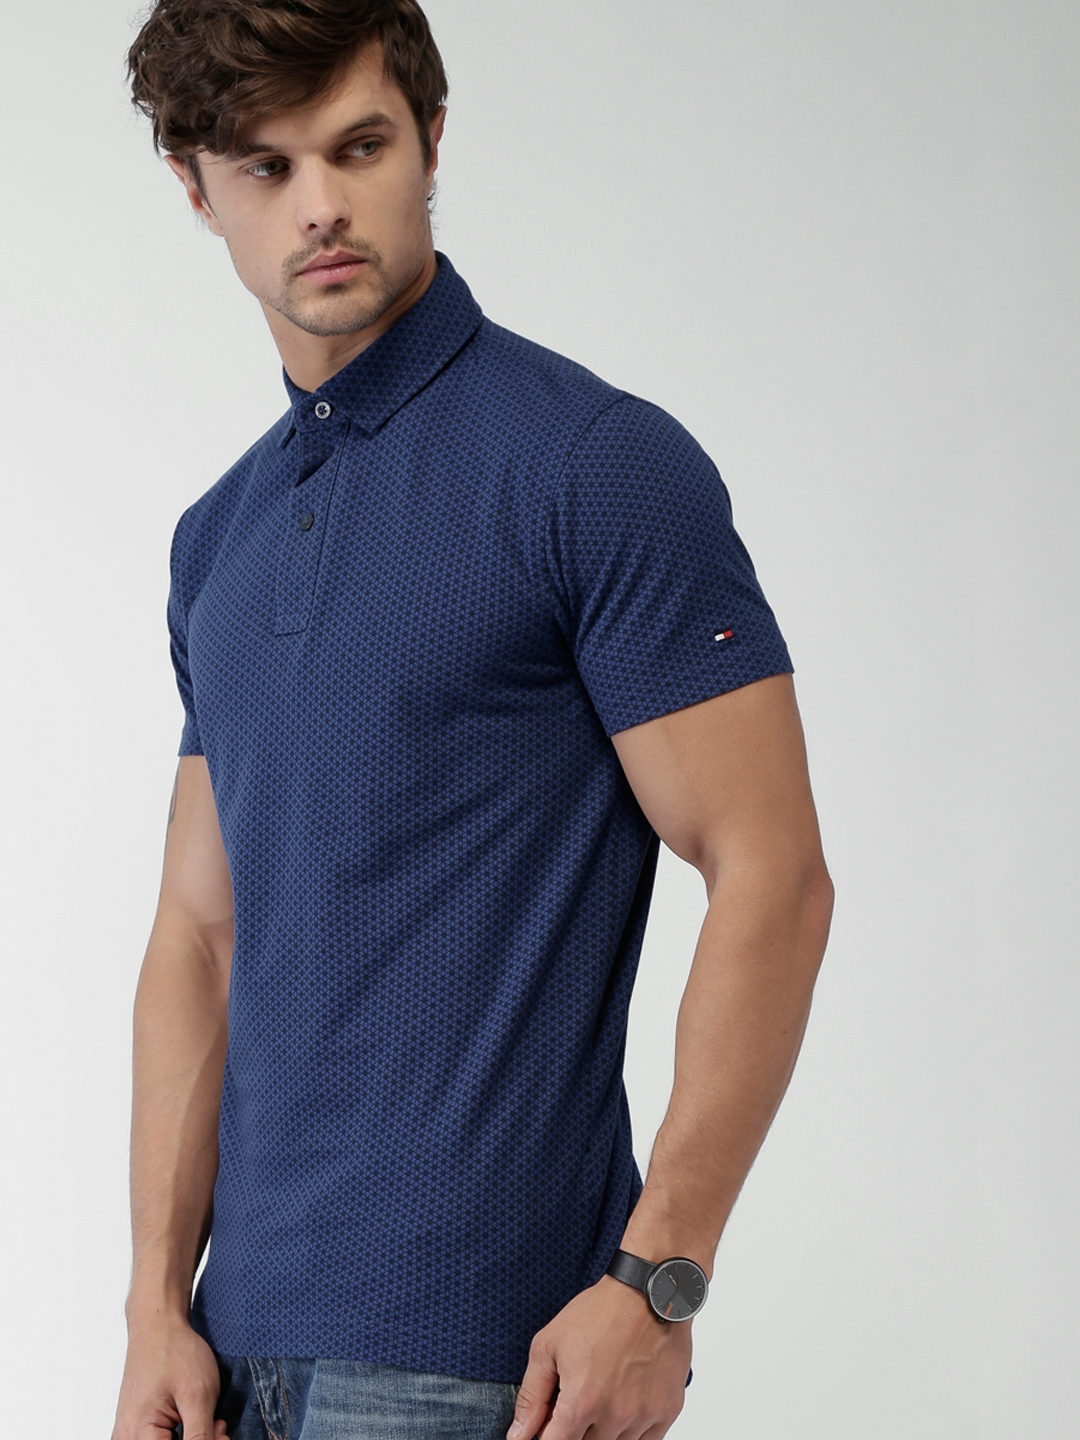 6baa178d Buy Tommy Hilfiger Blue Printed Slim Fit Polo T Shirt - Tshirts for ...